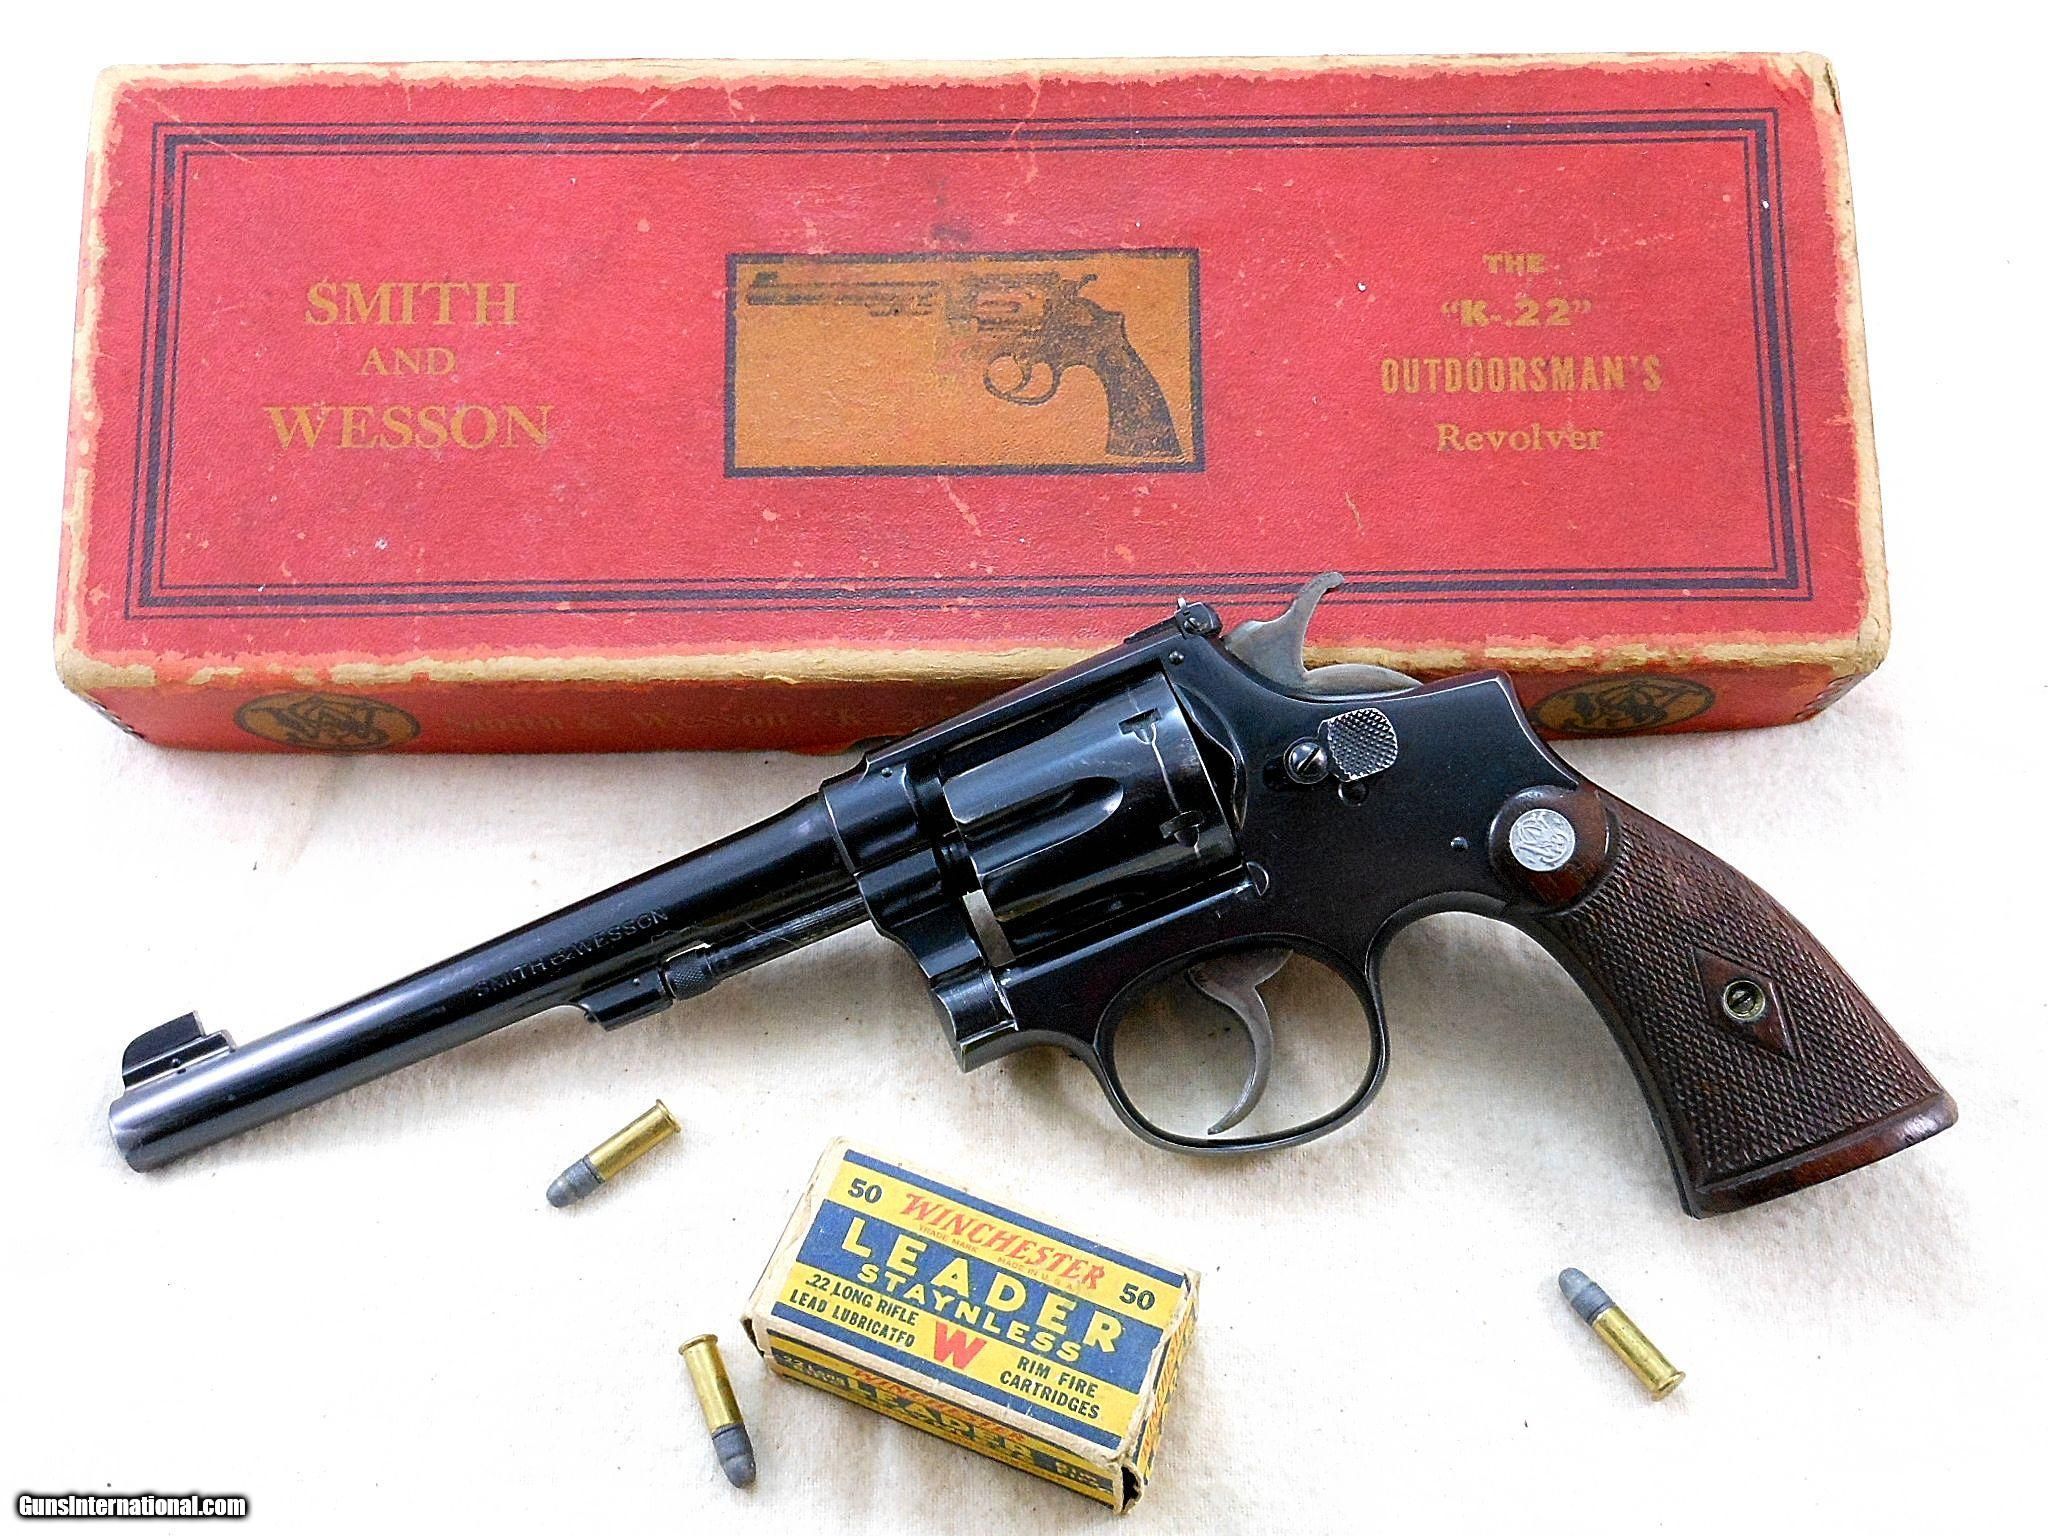 Smith-and-Wesson-K-22-Outdoorsman-Revolver-With-Original-Red-Box_100834244_51511_17FA718F7E680172